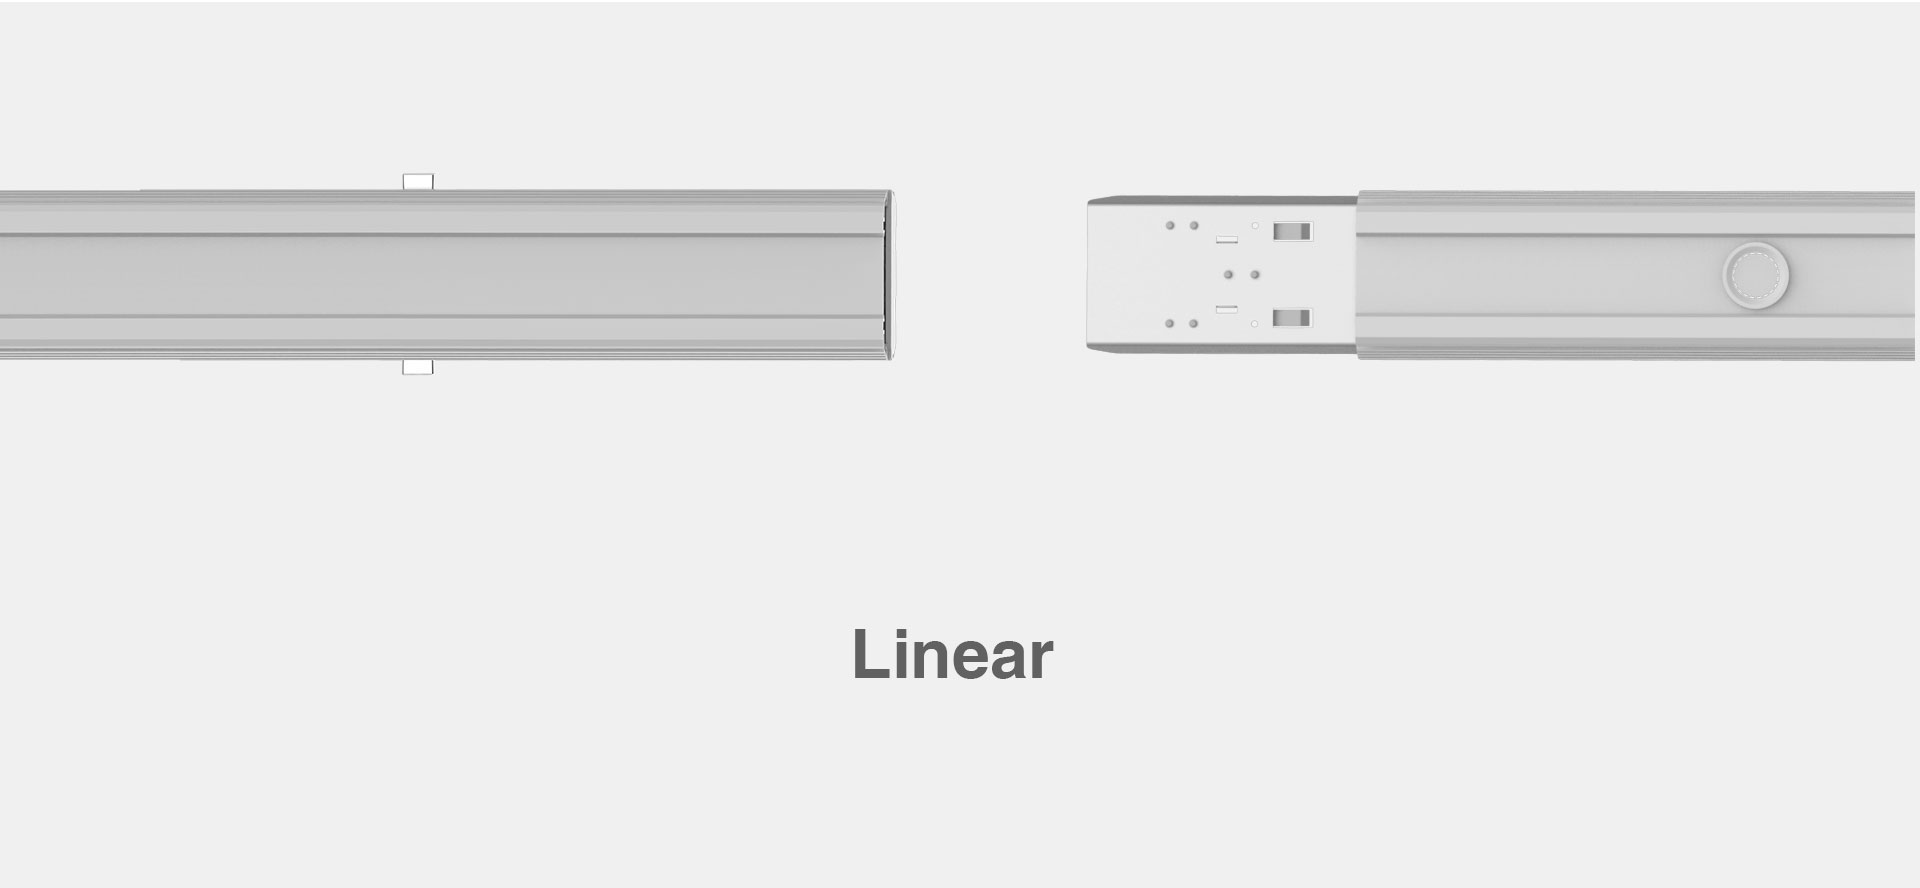 HiLink Install Linear